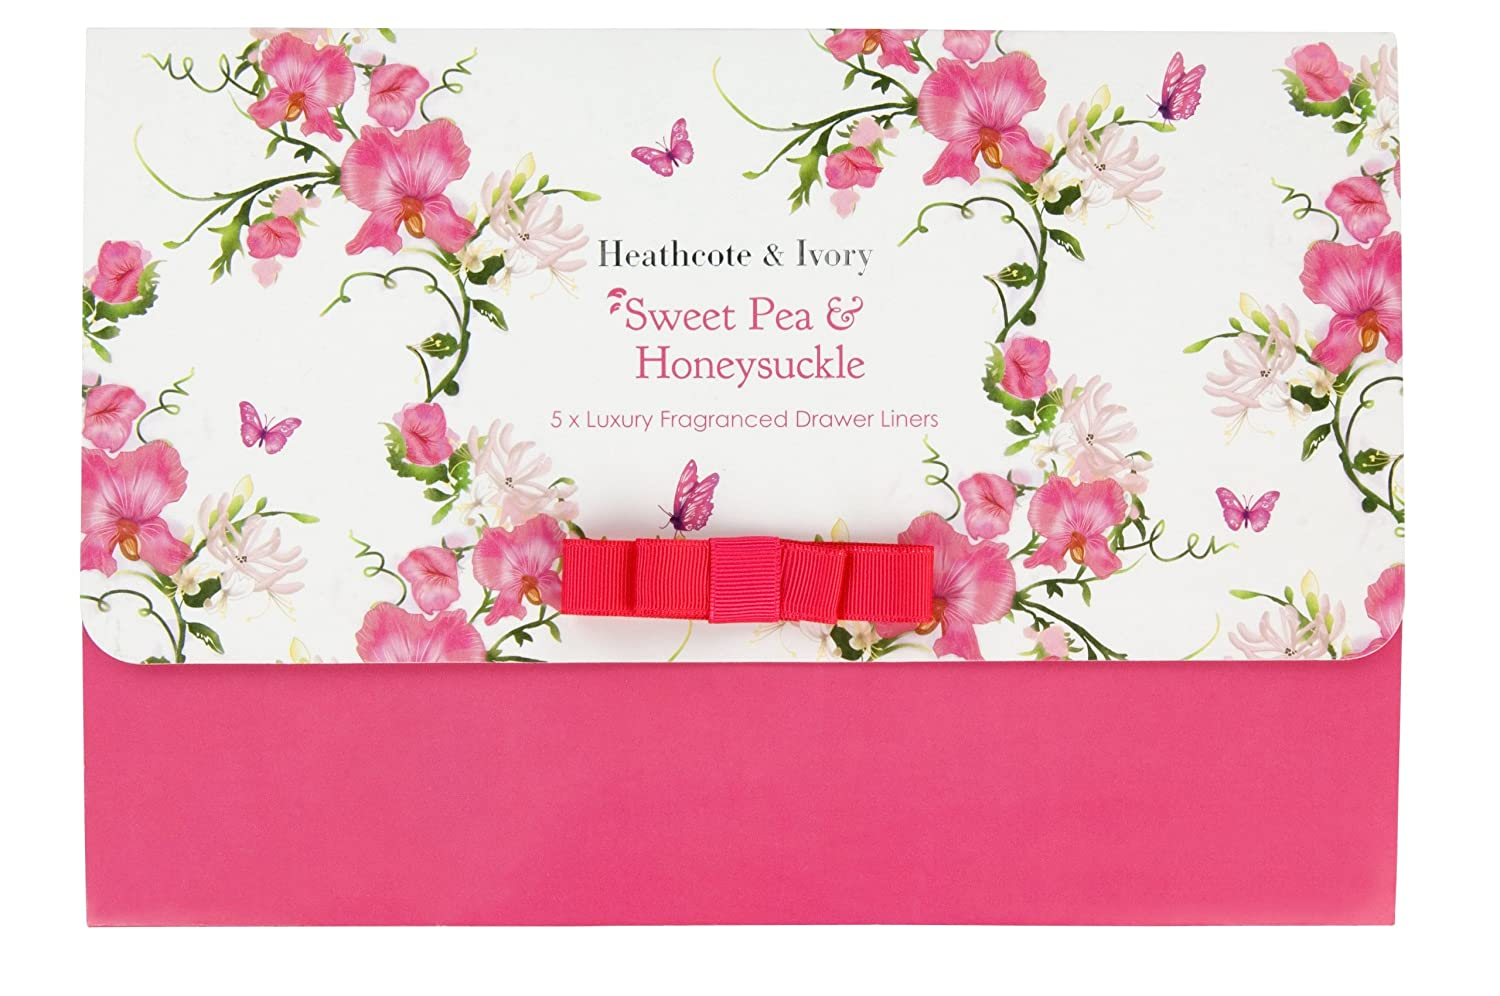 Heathcote & Ivory Sweet Pea and Honeysuckle Luxury Fragranced Drawer Liners, Set of 5 FG4309